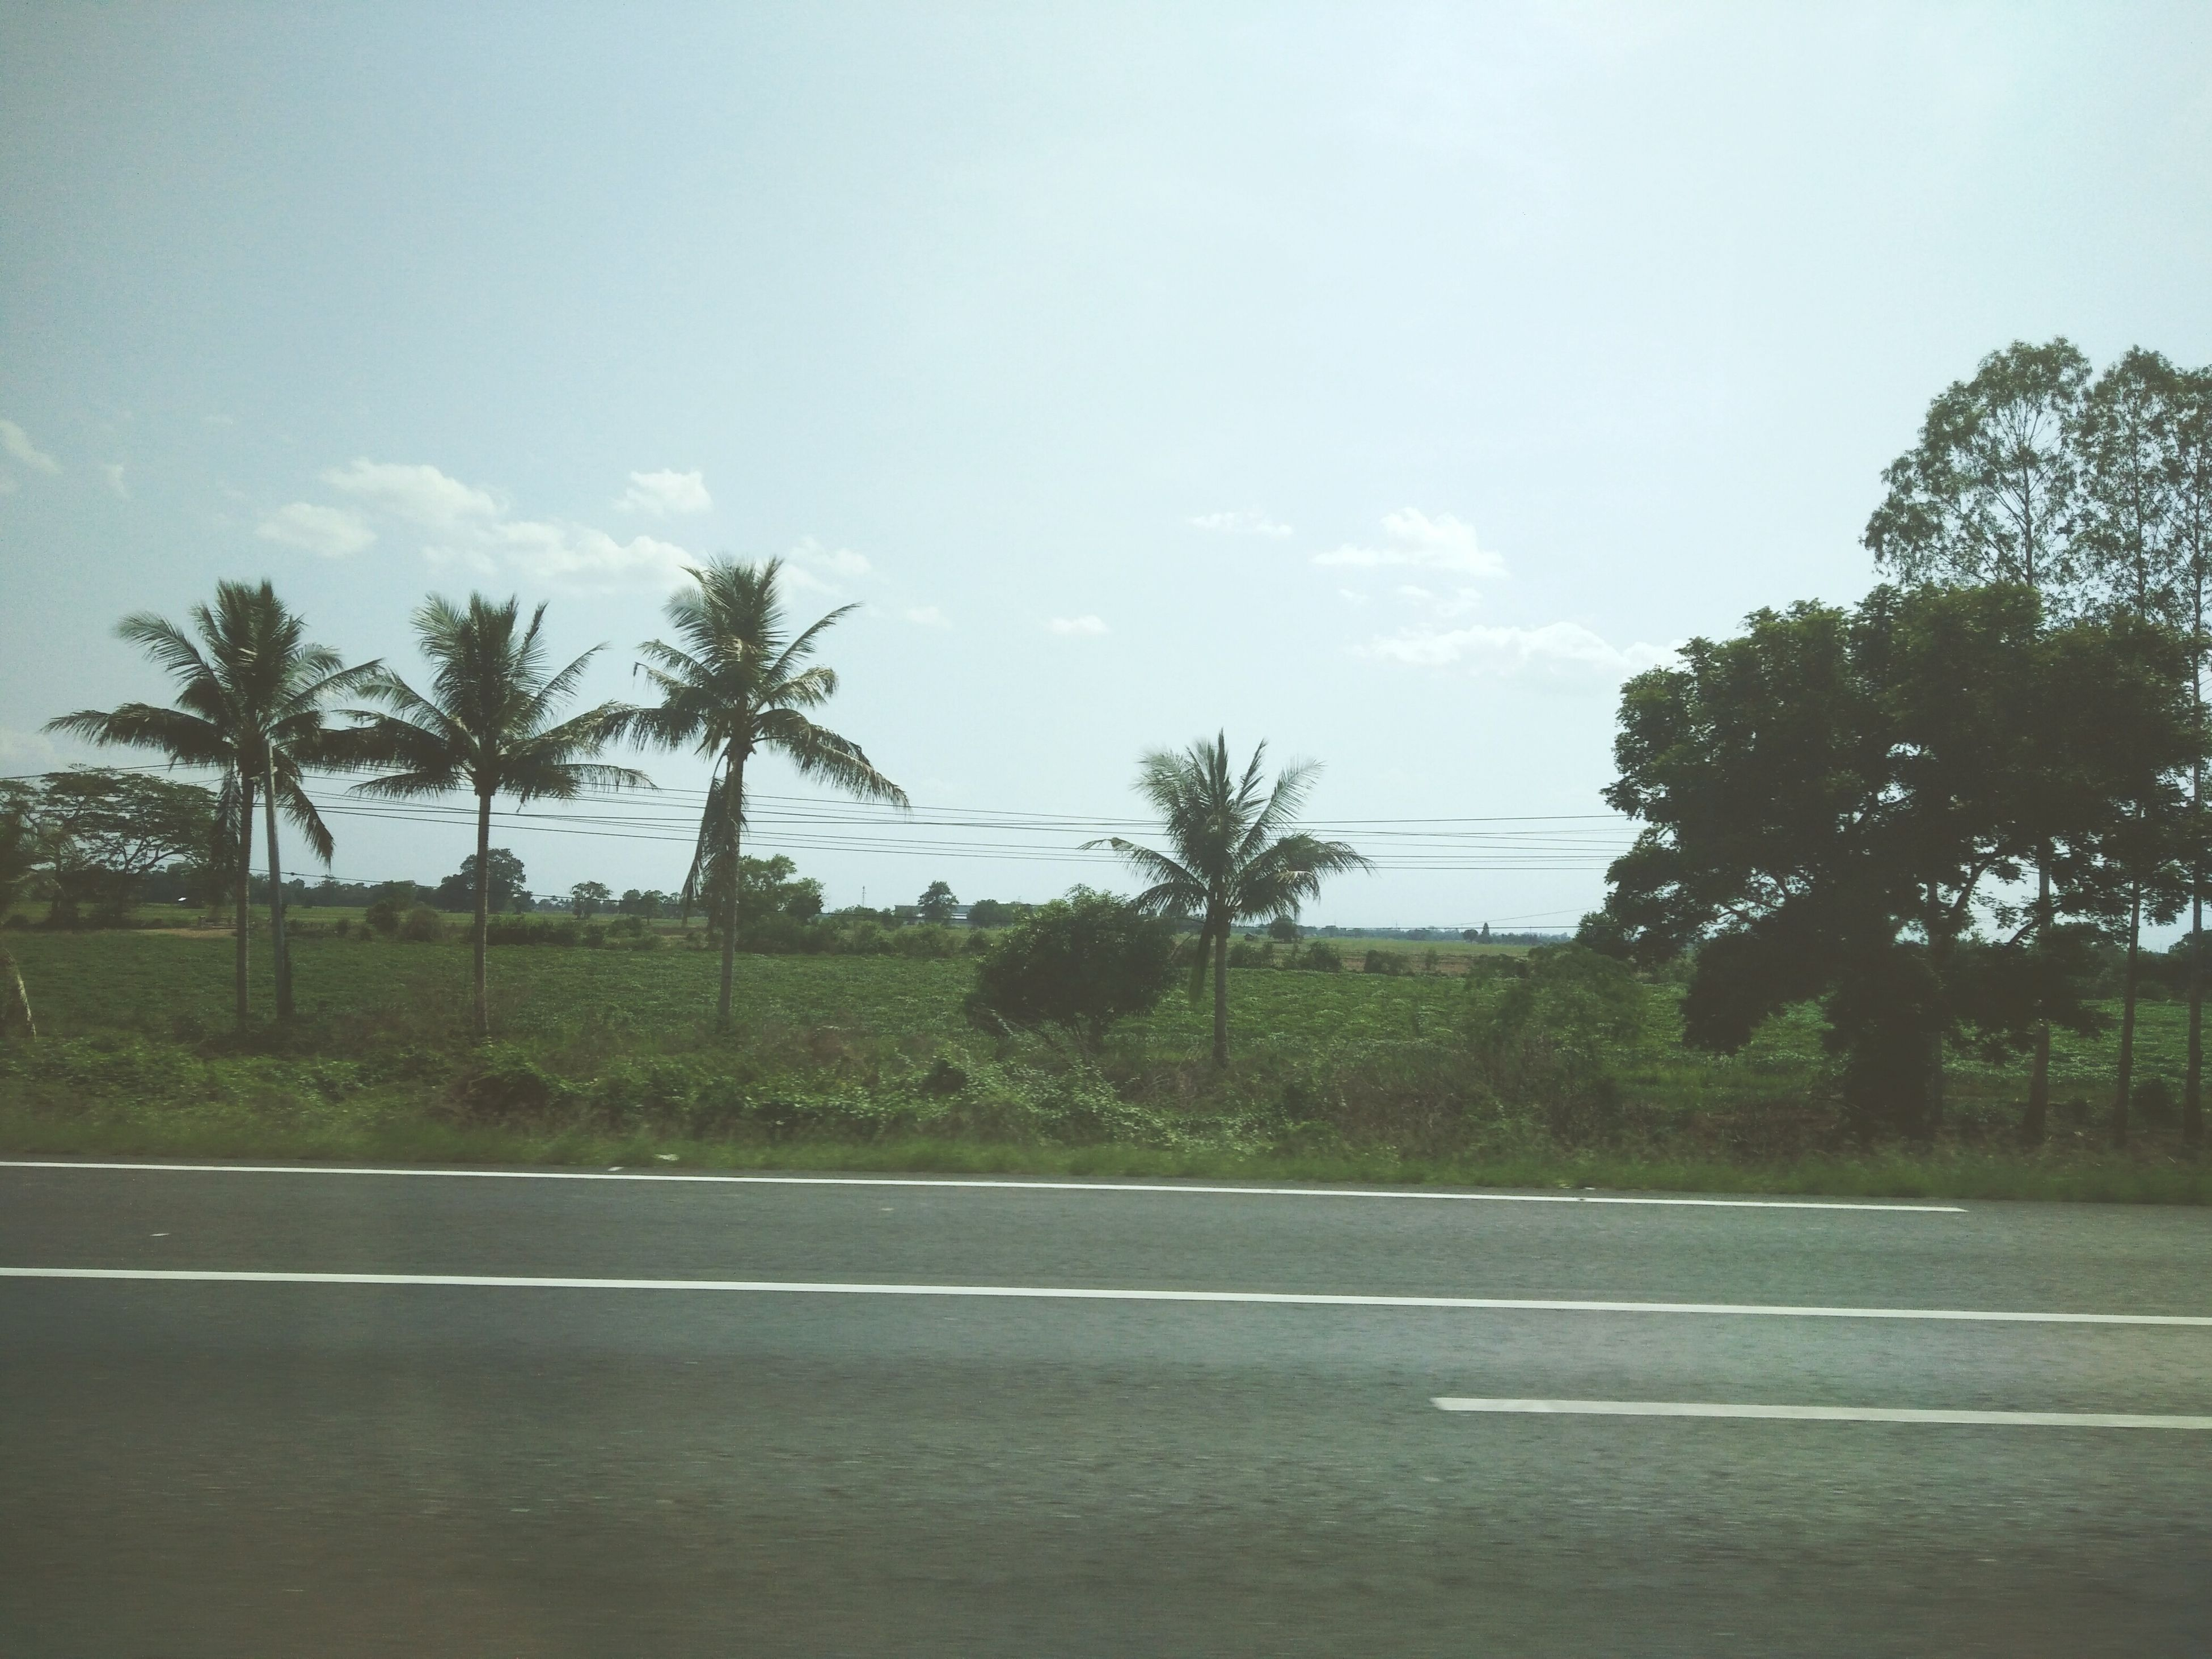 tree, sky, road, tranquility, tranquil scene, growth, nature, landscape, transportation, scenics, palm tree, beauty in nature, day, field, grass, street, cloud - sky, cloud, outdoors, no people